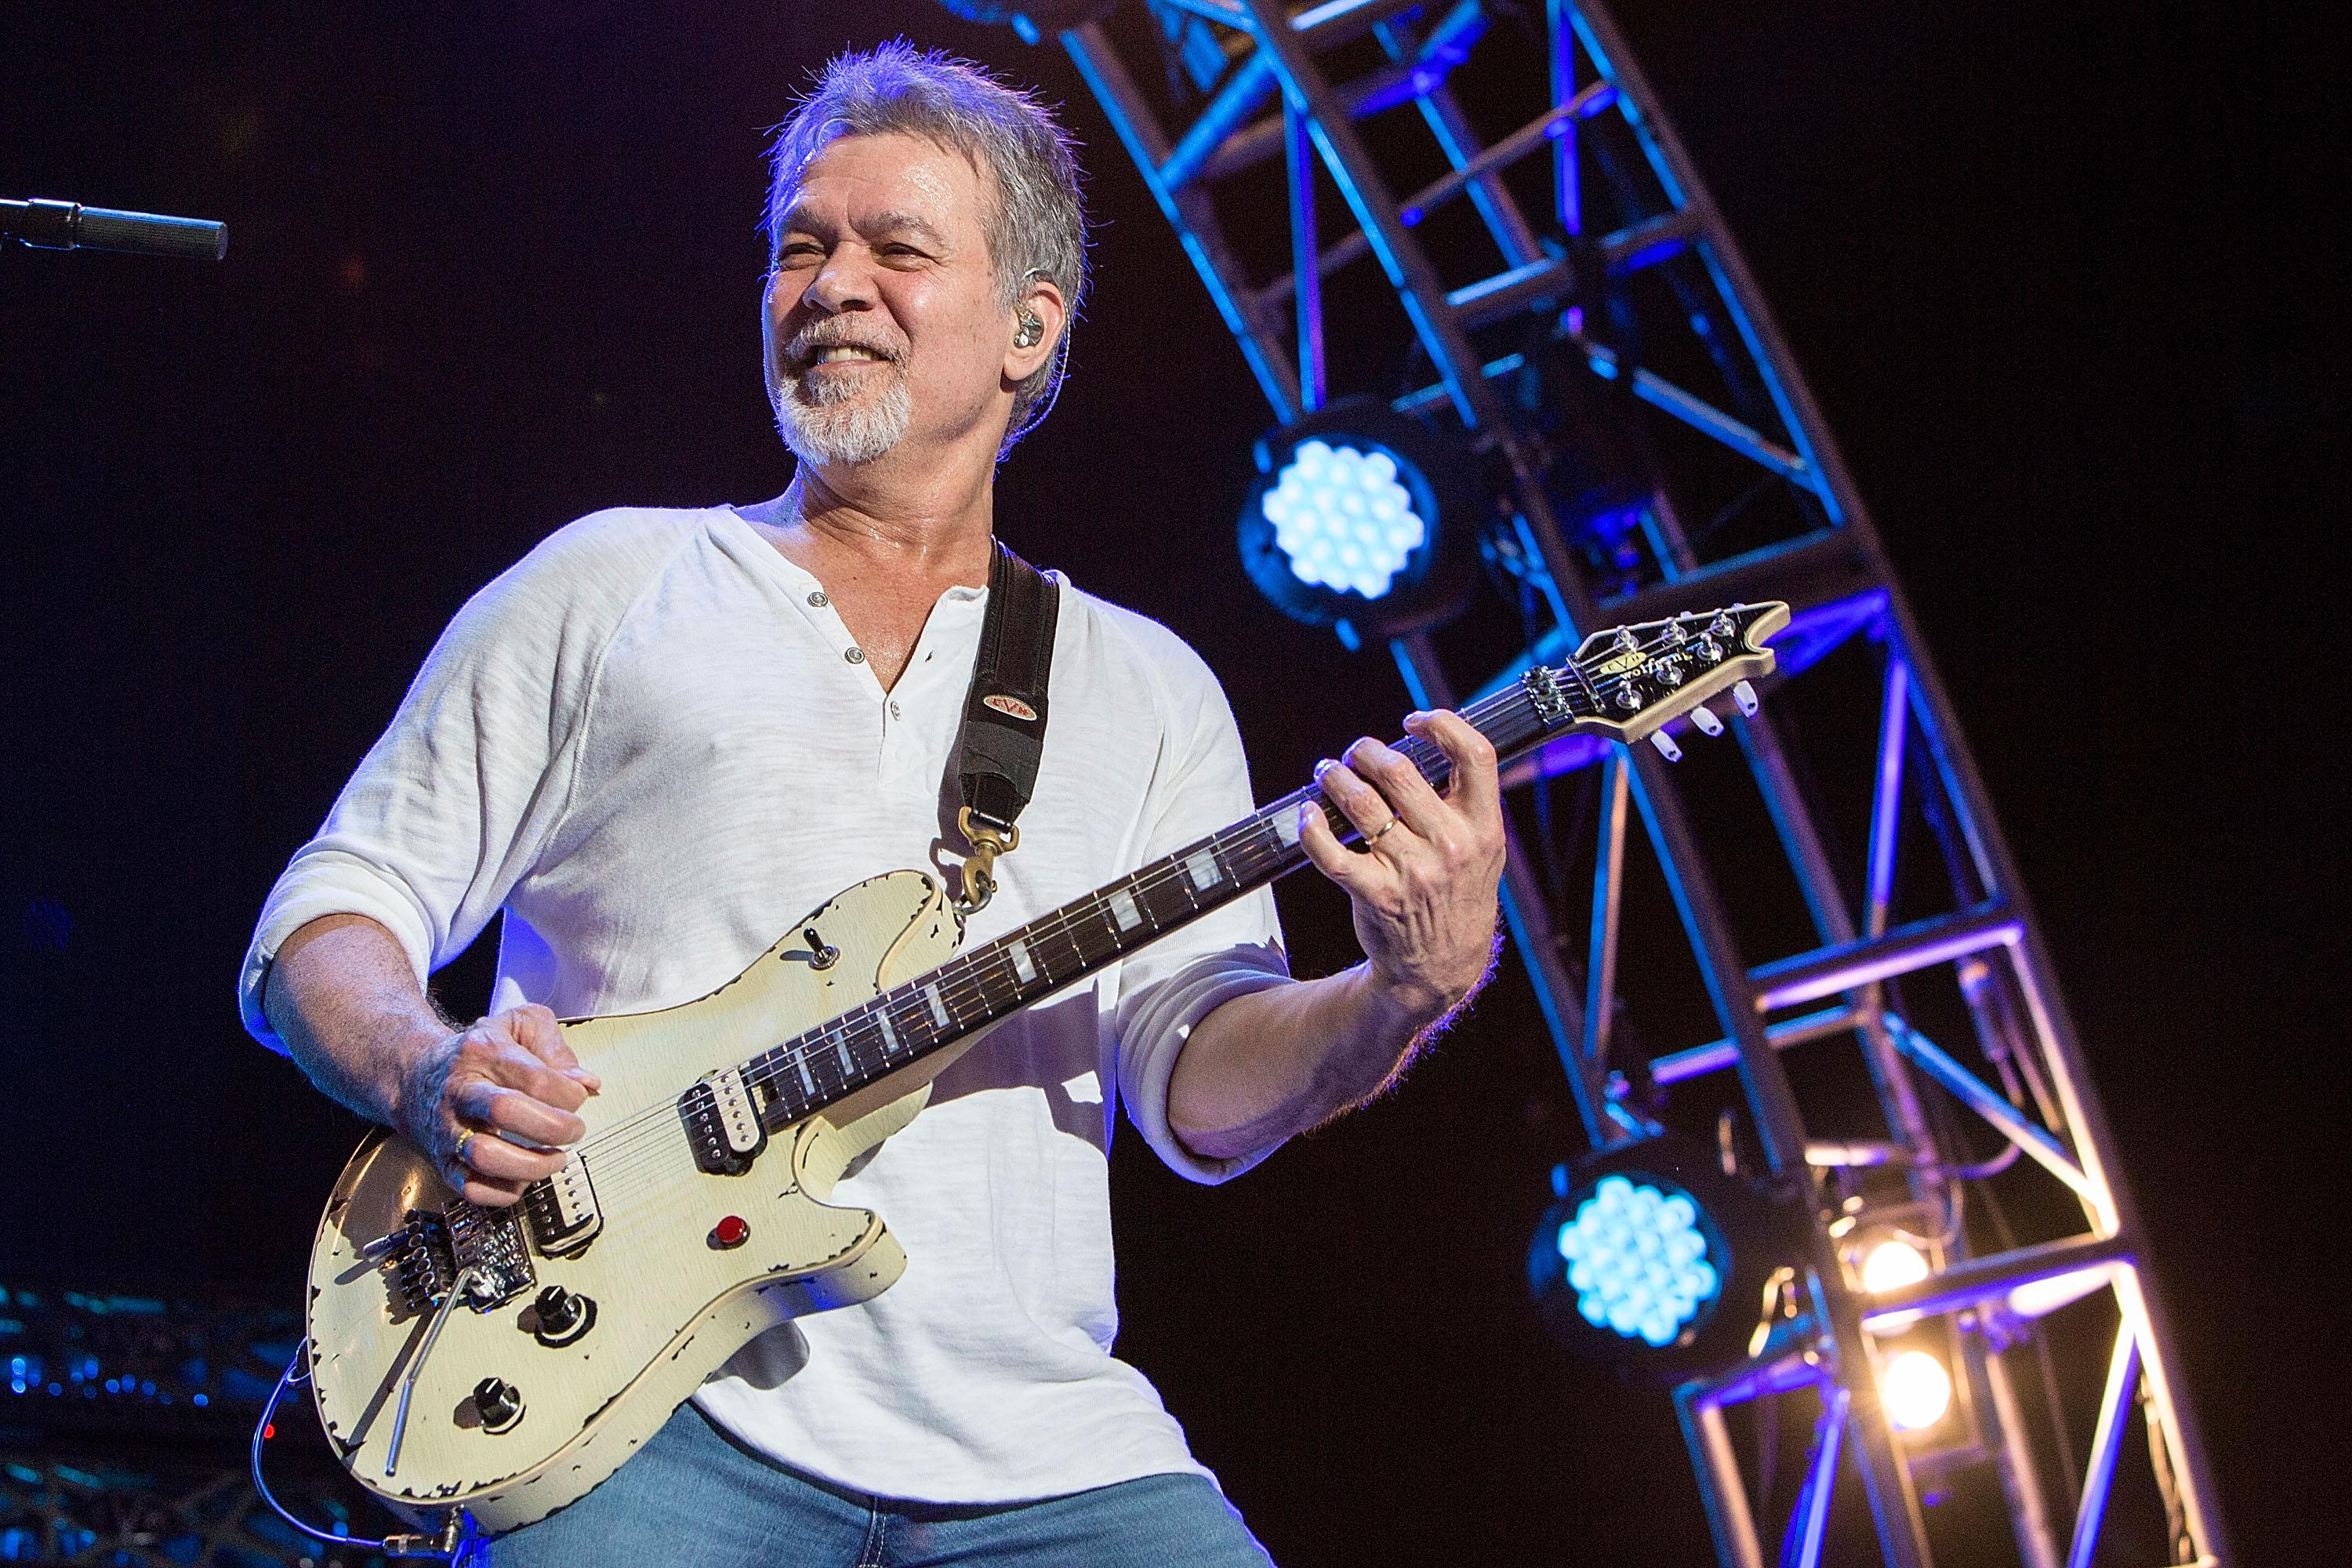 Eddie Van Halen (Photo by Daniel Knighton/Getty Images)